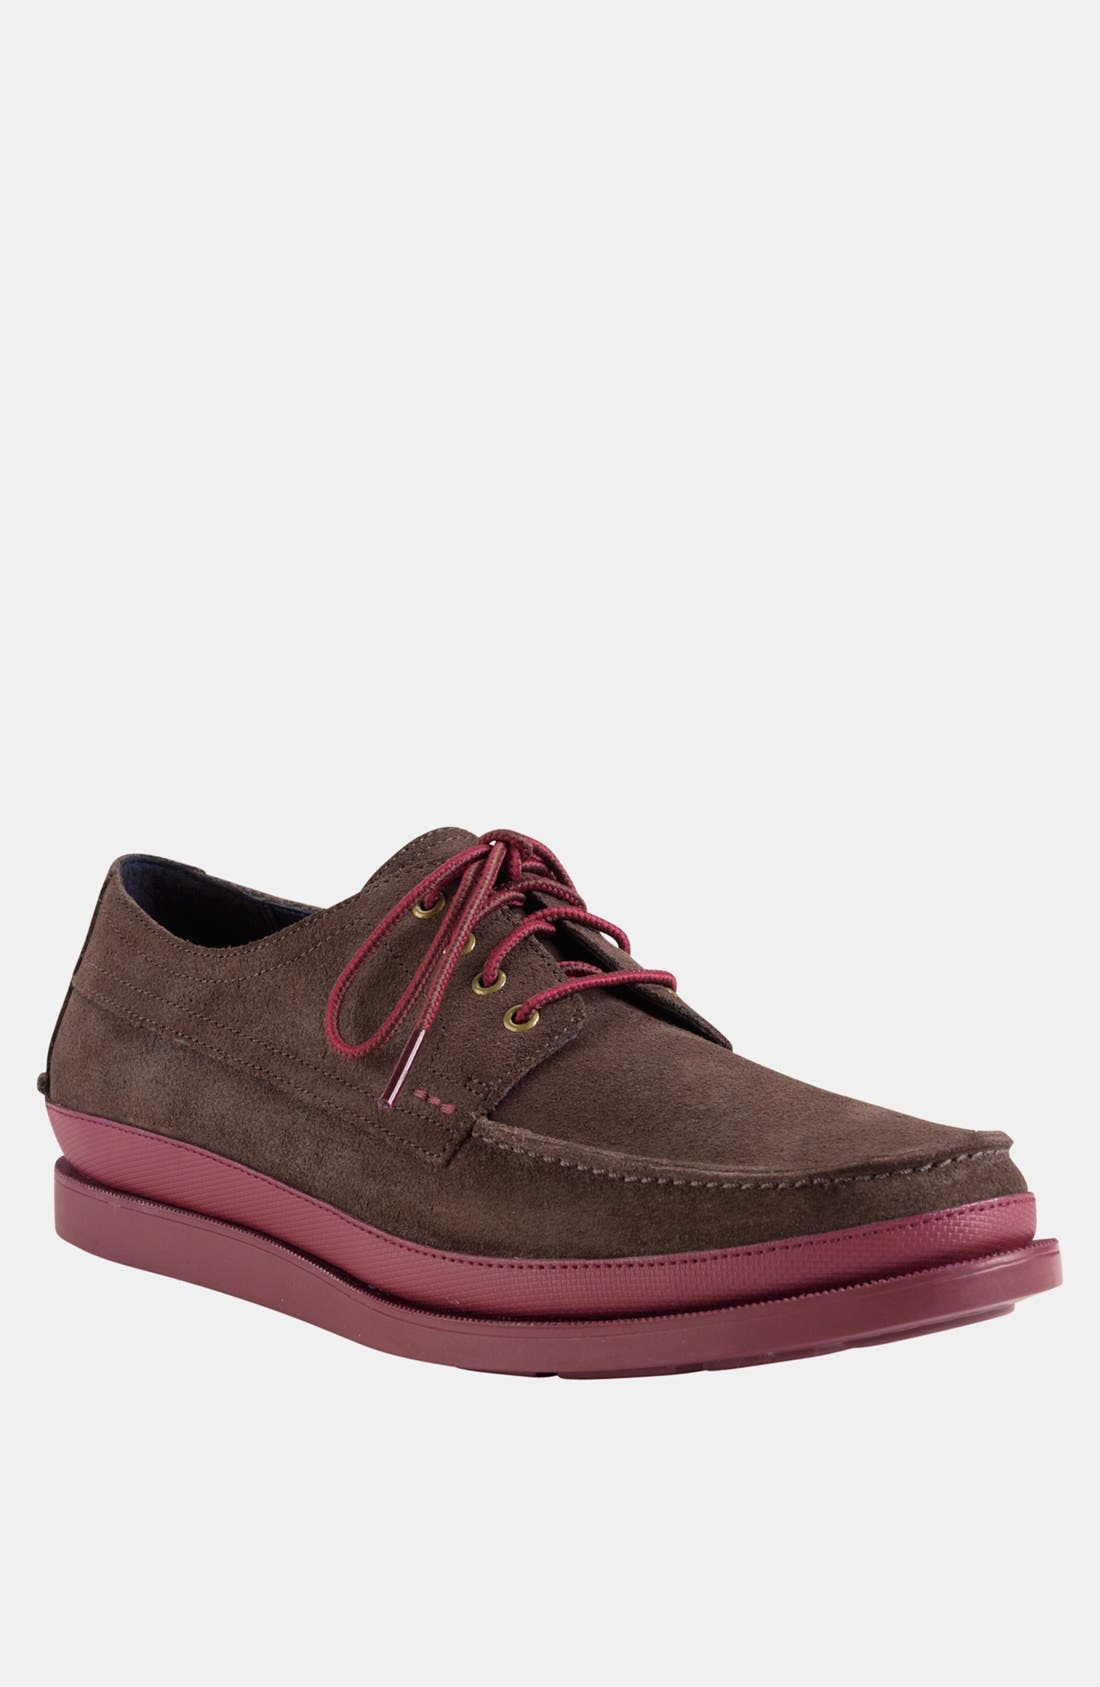 Alternate Image 1 Selected - Cole Haan 'Mason' Moc Toe Derby   (Men)